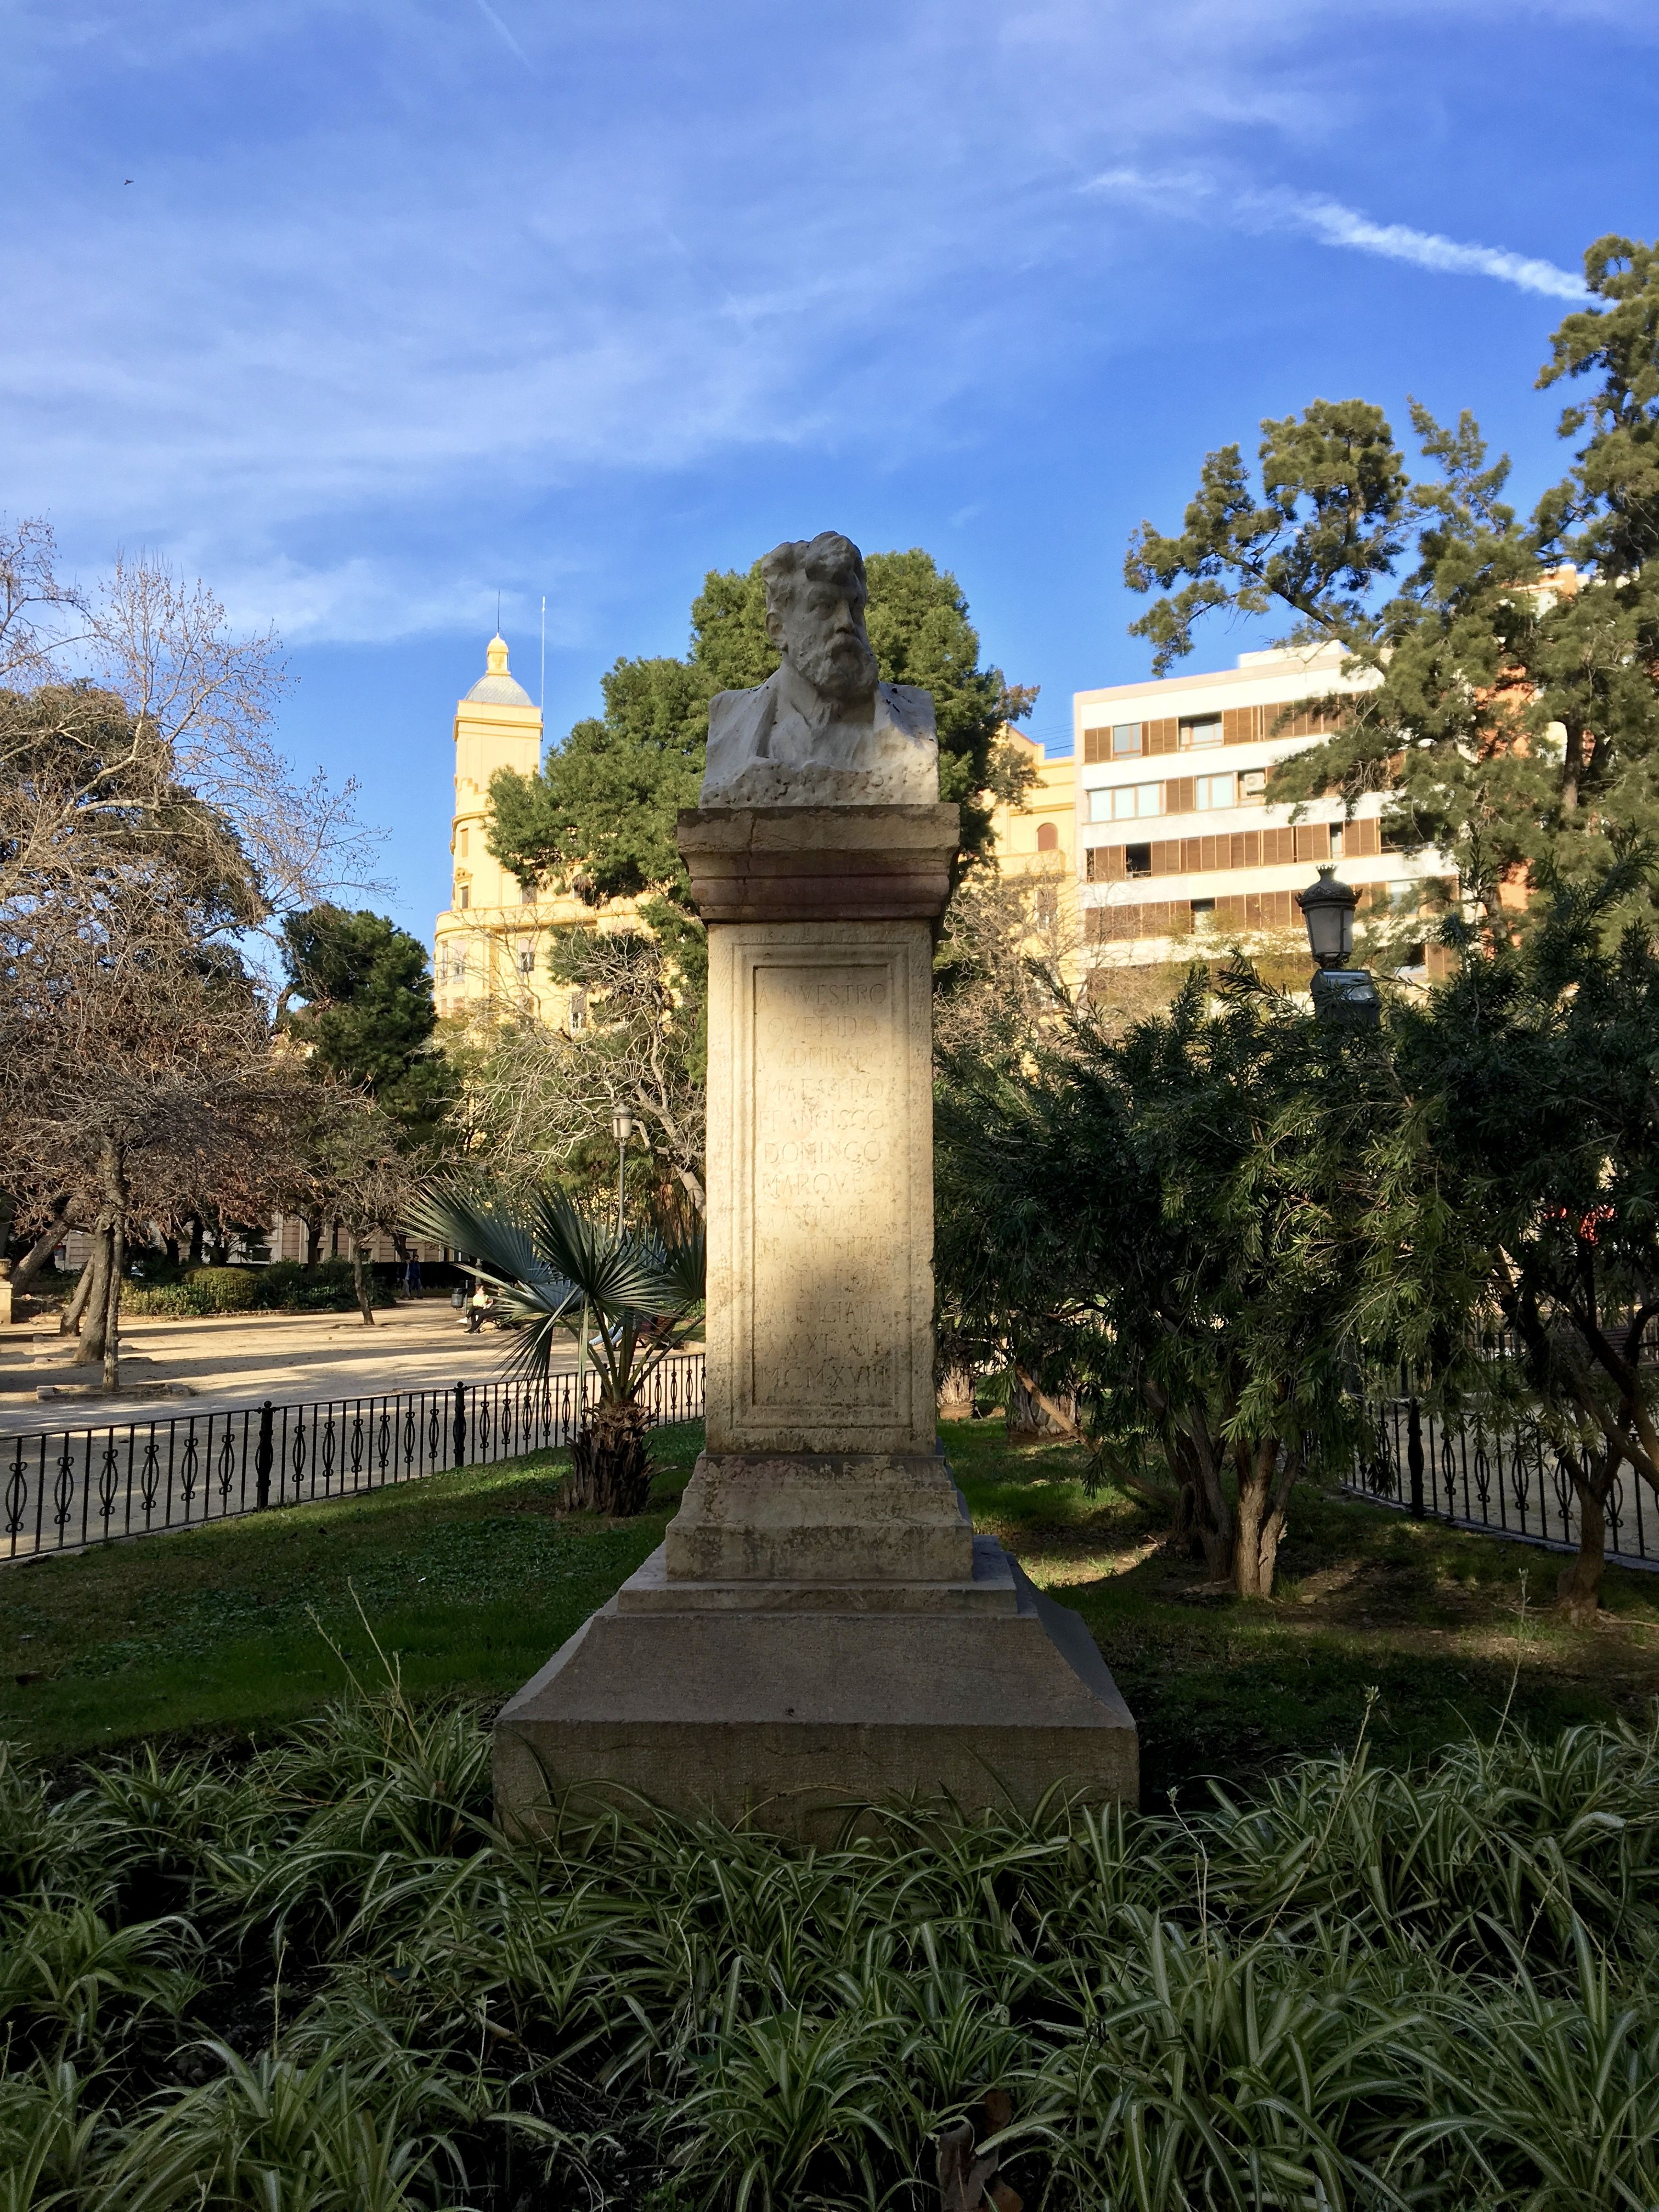 This is a bust of Francisco Domingo Marqués, located in Jardins de la Glorieta in Valencia. It was created by Mariano Benlliure to celebrate this famous painter. He is known for his paintings in the eclectic style.